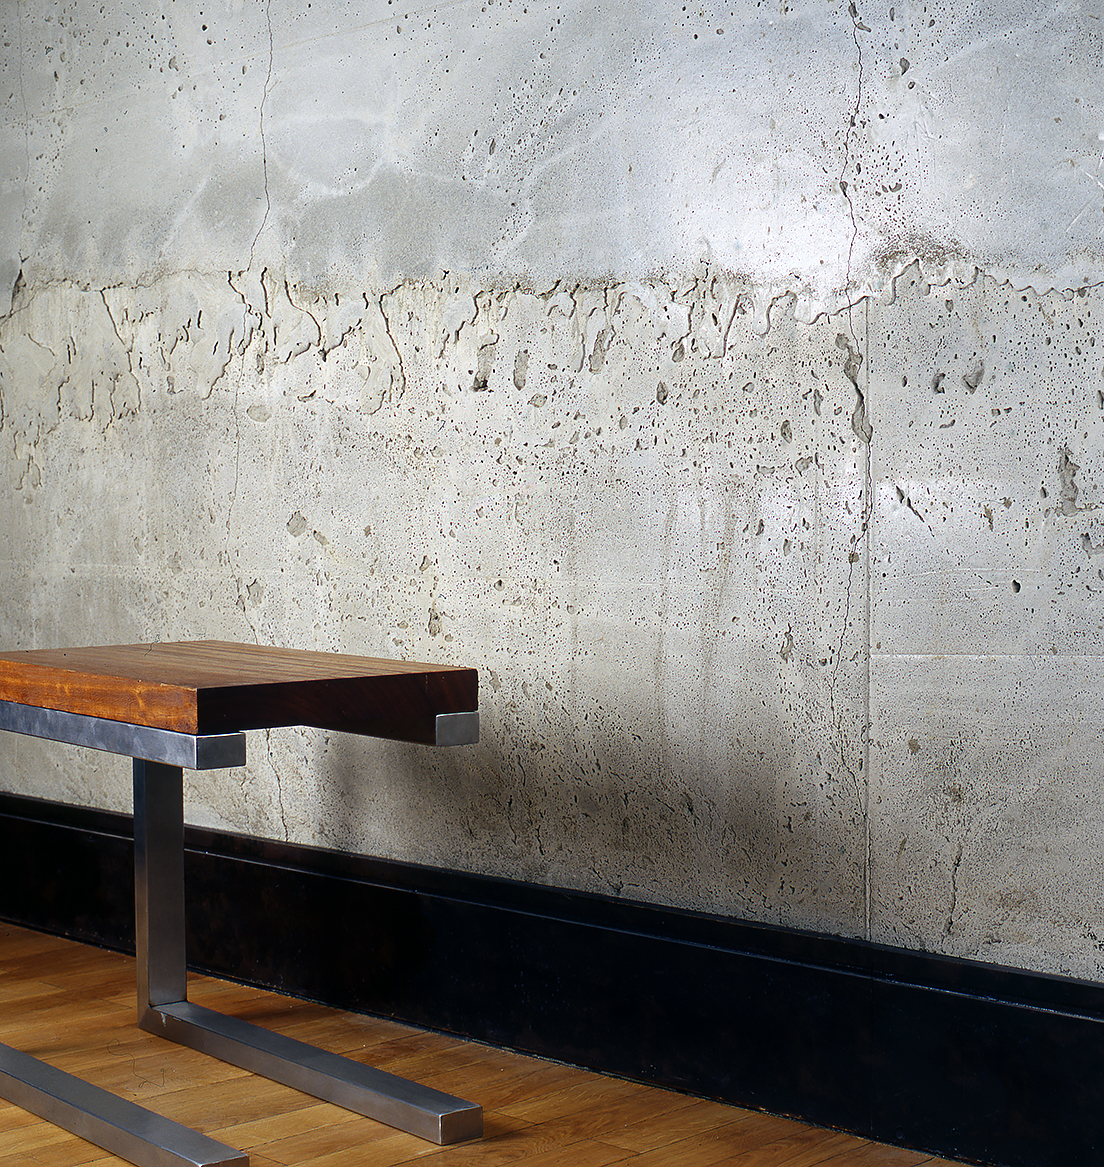 Chair: Eroko and Stainless Steel: Polished Concrete Wall